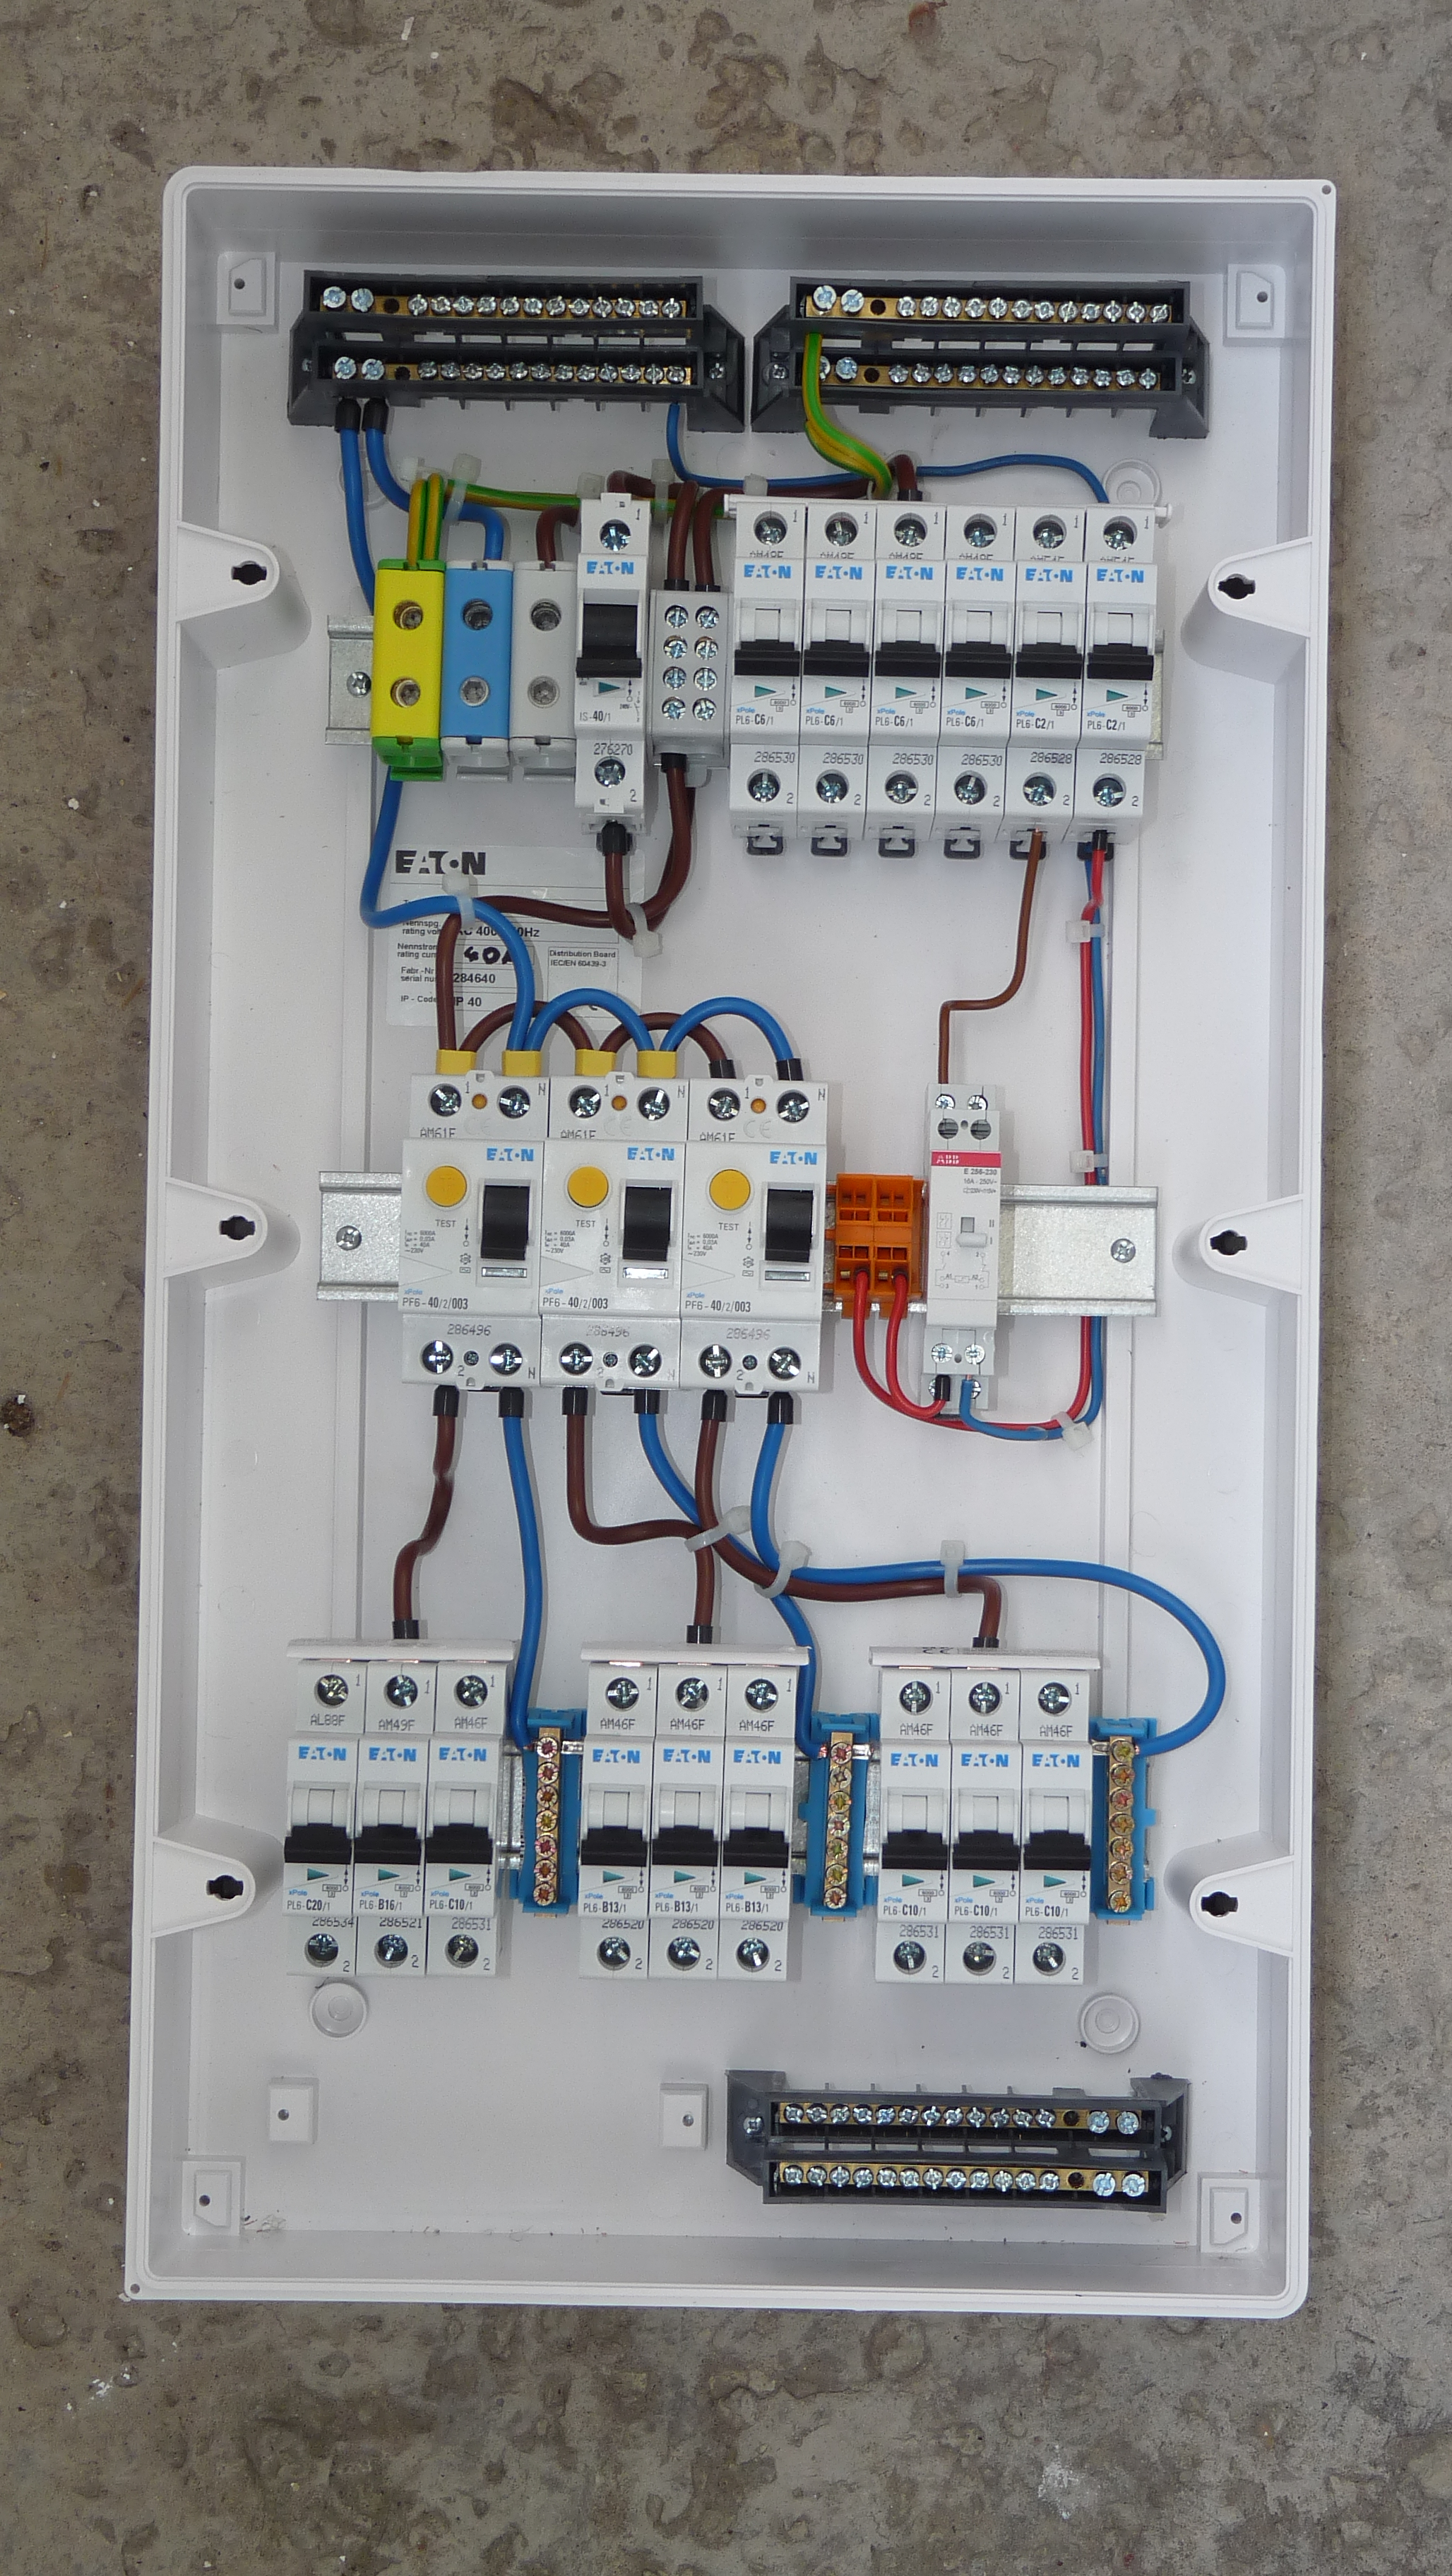 Residential Wiring For Phone Tv Internet Download Diagrams Home Phone Wiring File Paekaare 24 Fuse Box Wikimedia Commons Home Block Jack Installation